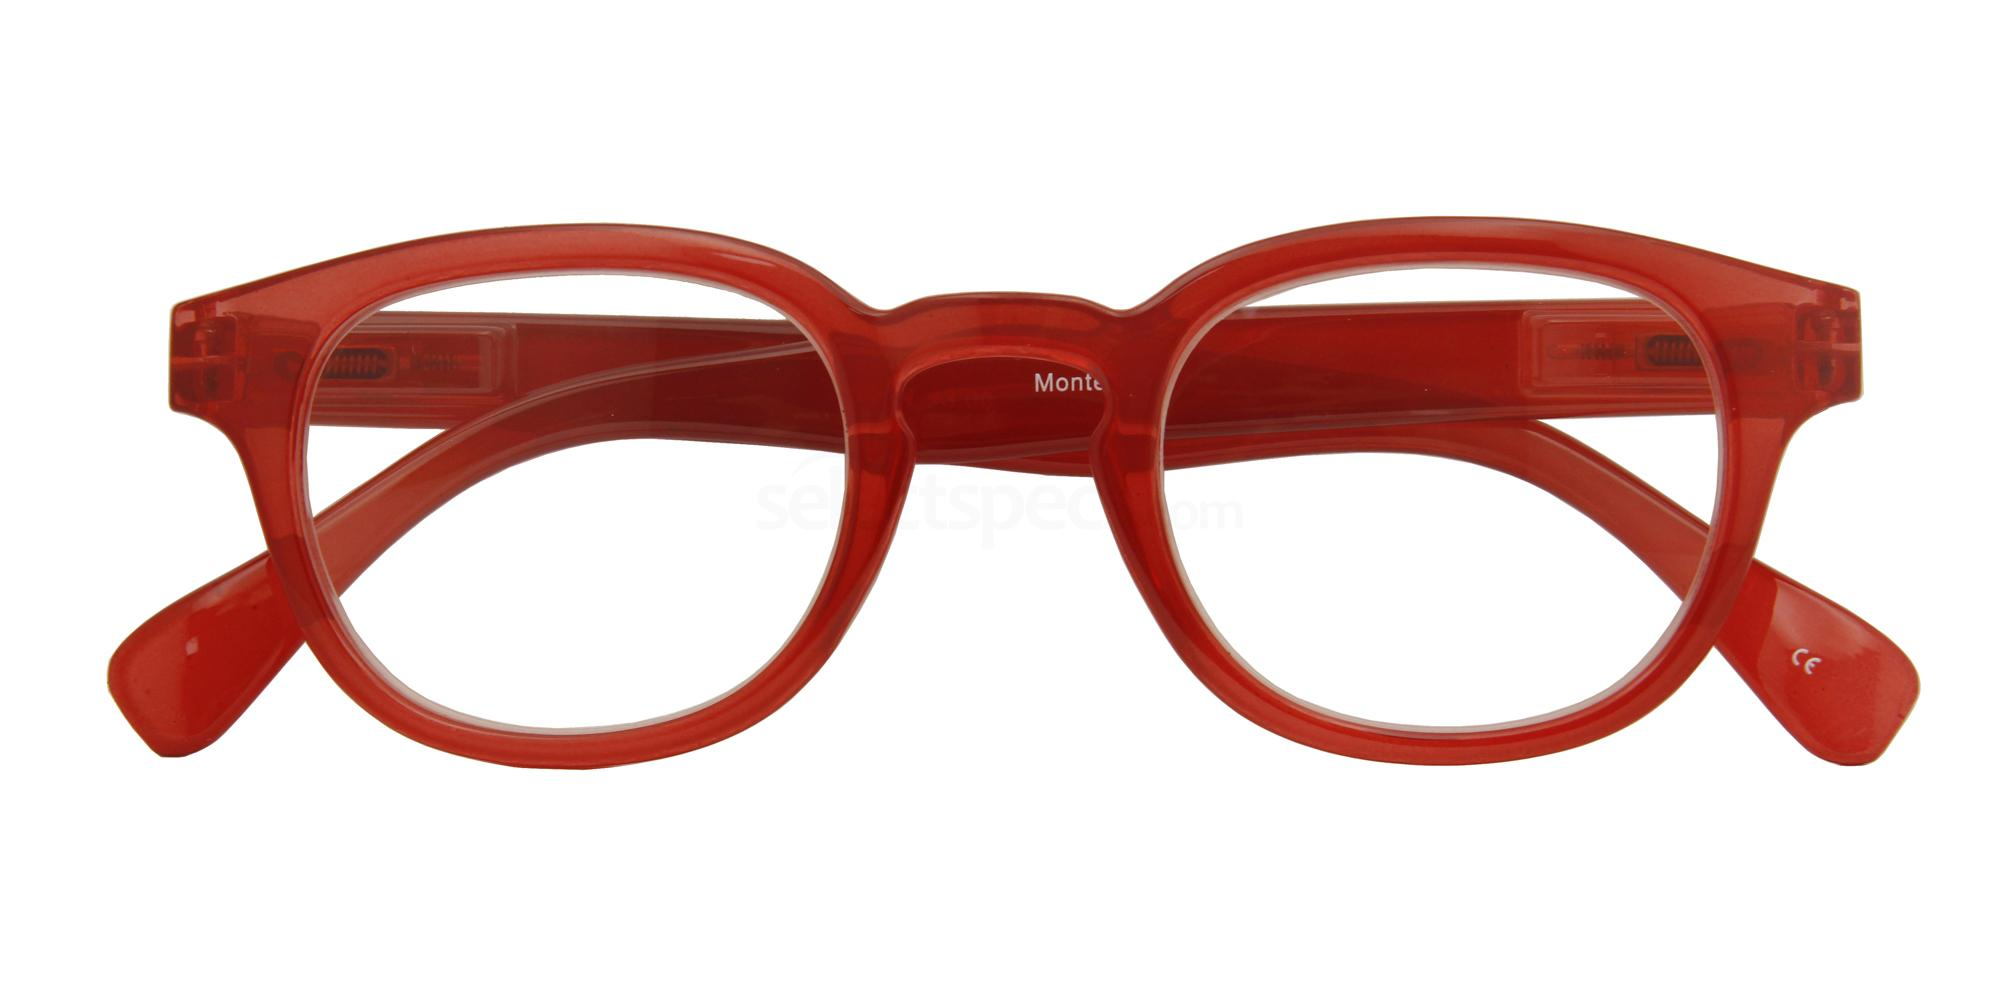 +1.00 Power Montel Red Accessories, Croon